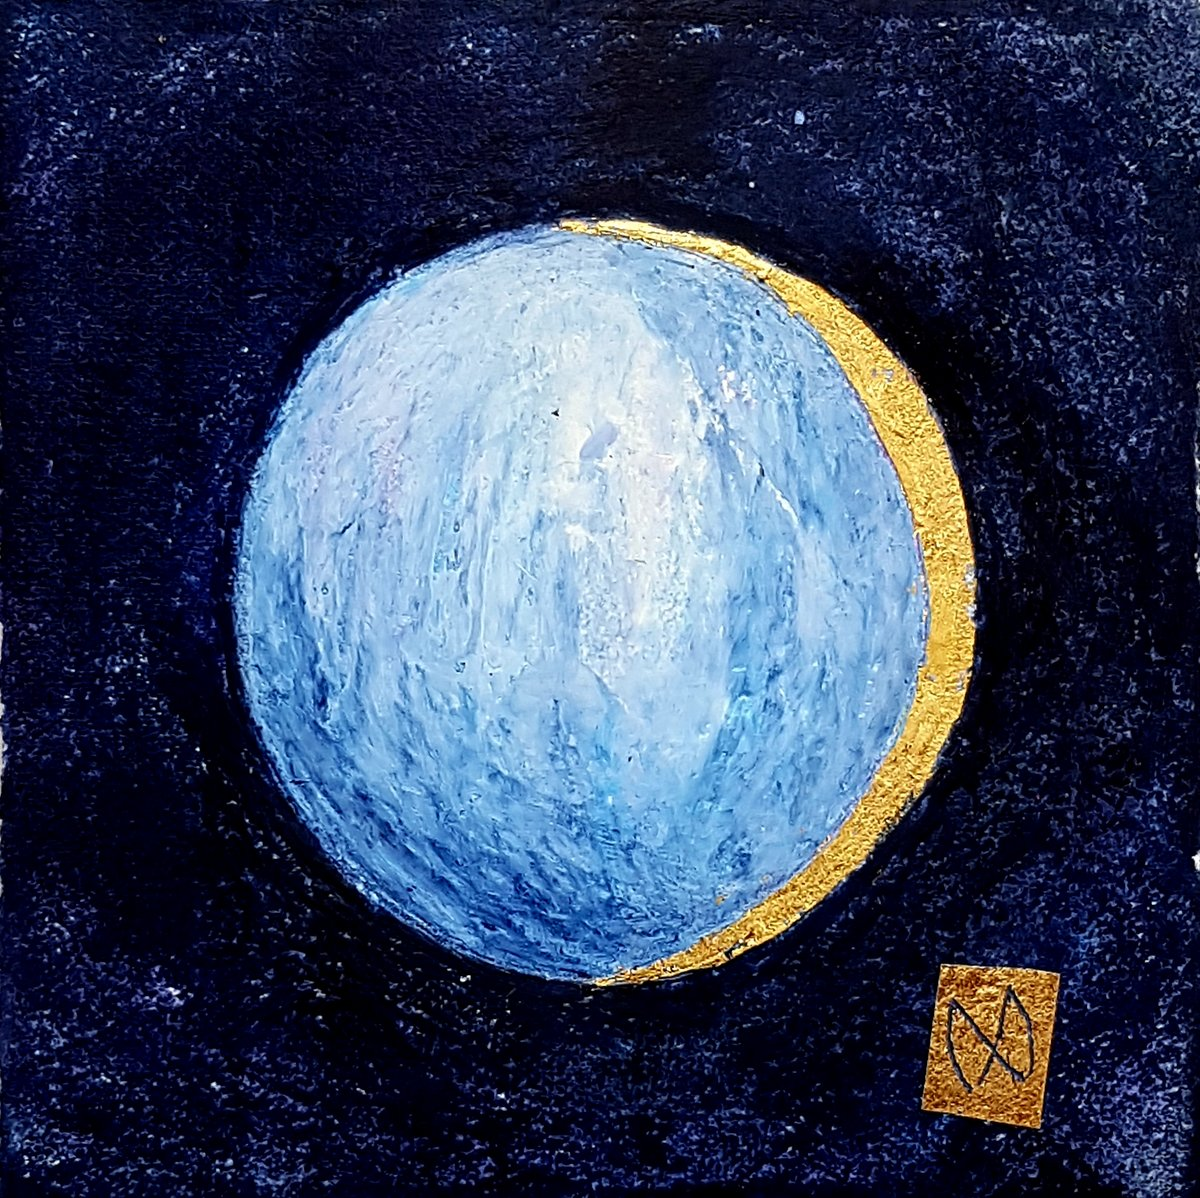 The Moon, lunar eclipse, Earth's shadow, brightness, darkness, light blue white